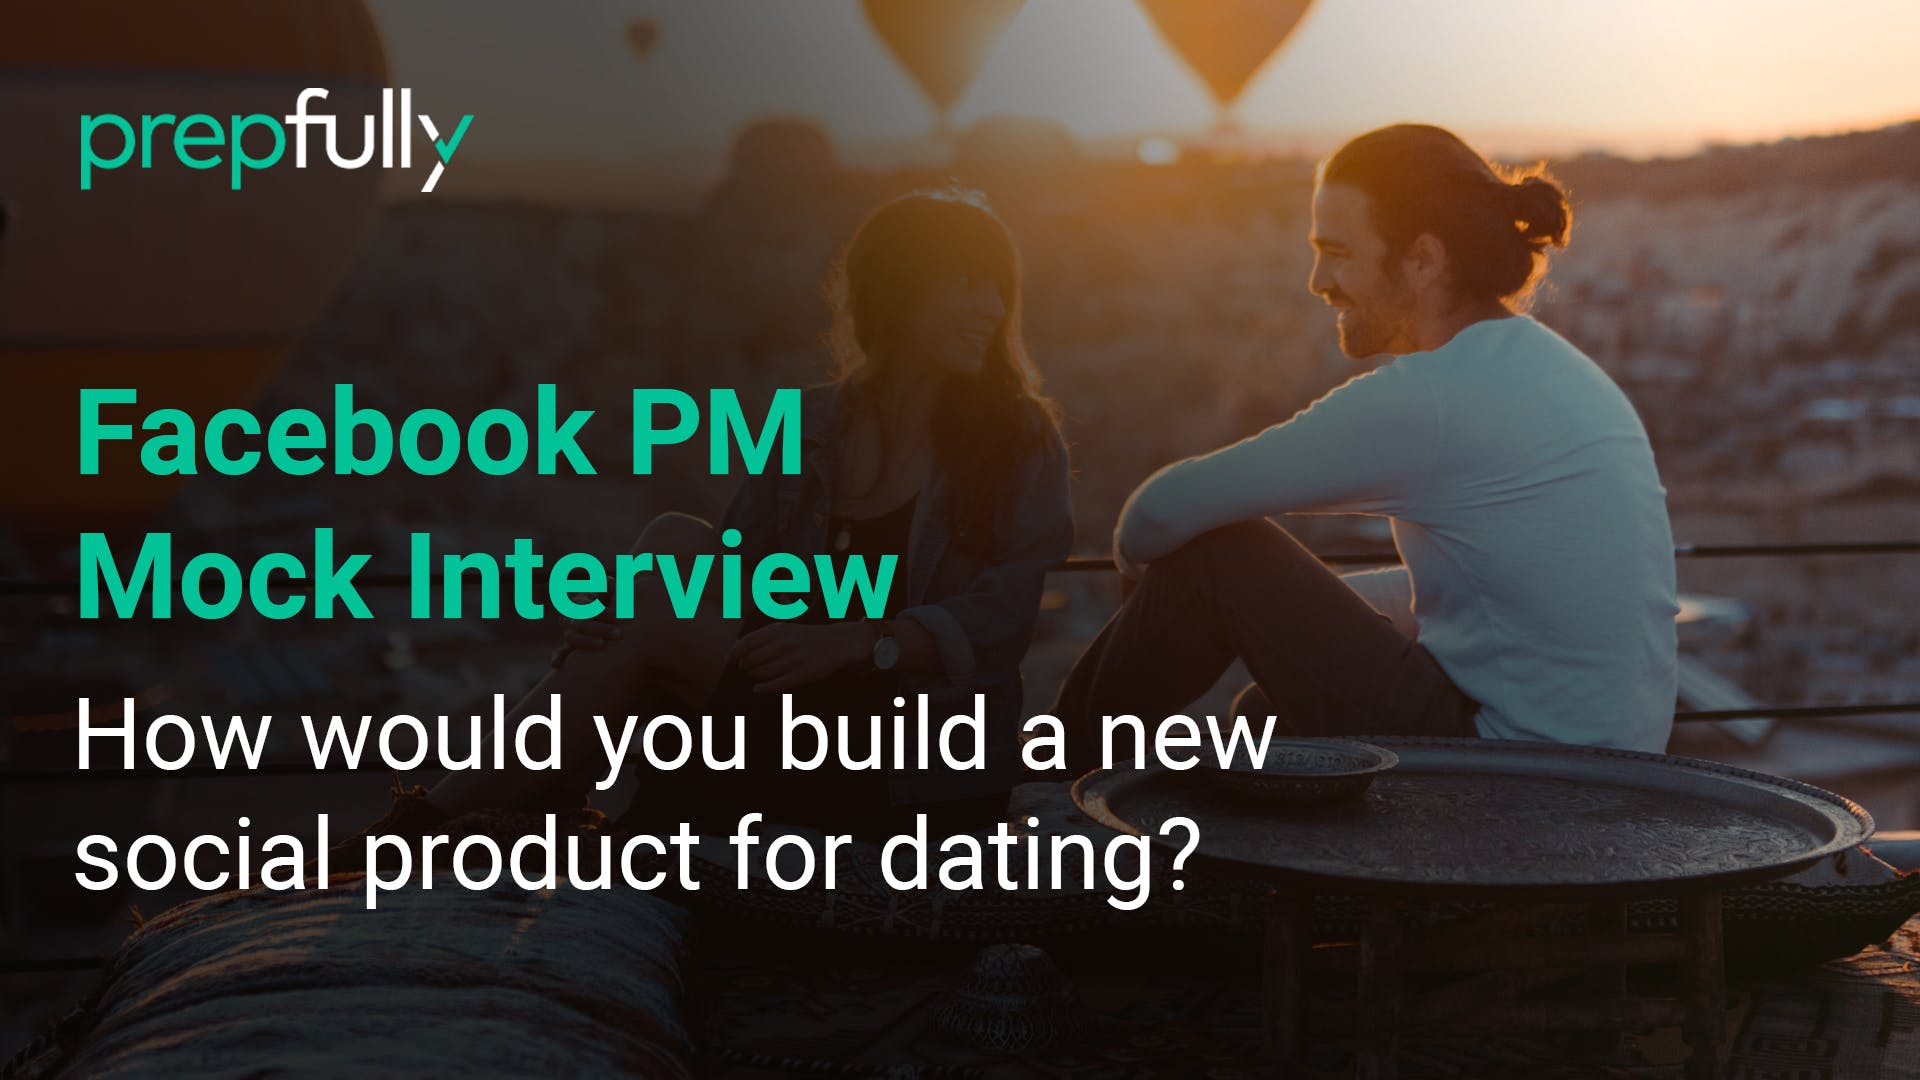 Facebook-PM-Interview-How-would-you-build-a-new-social-product-for-dating.